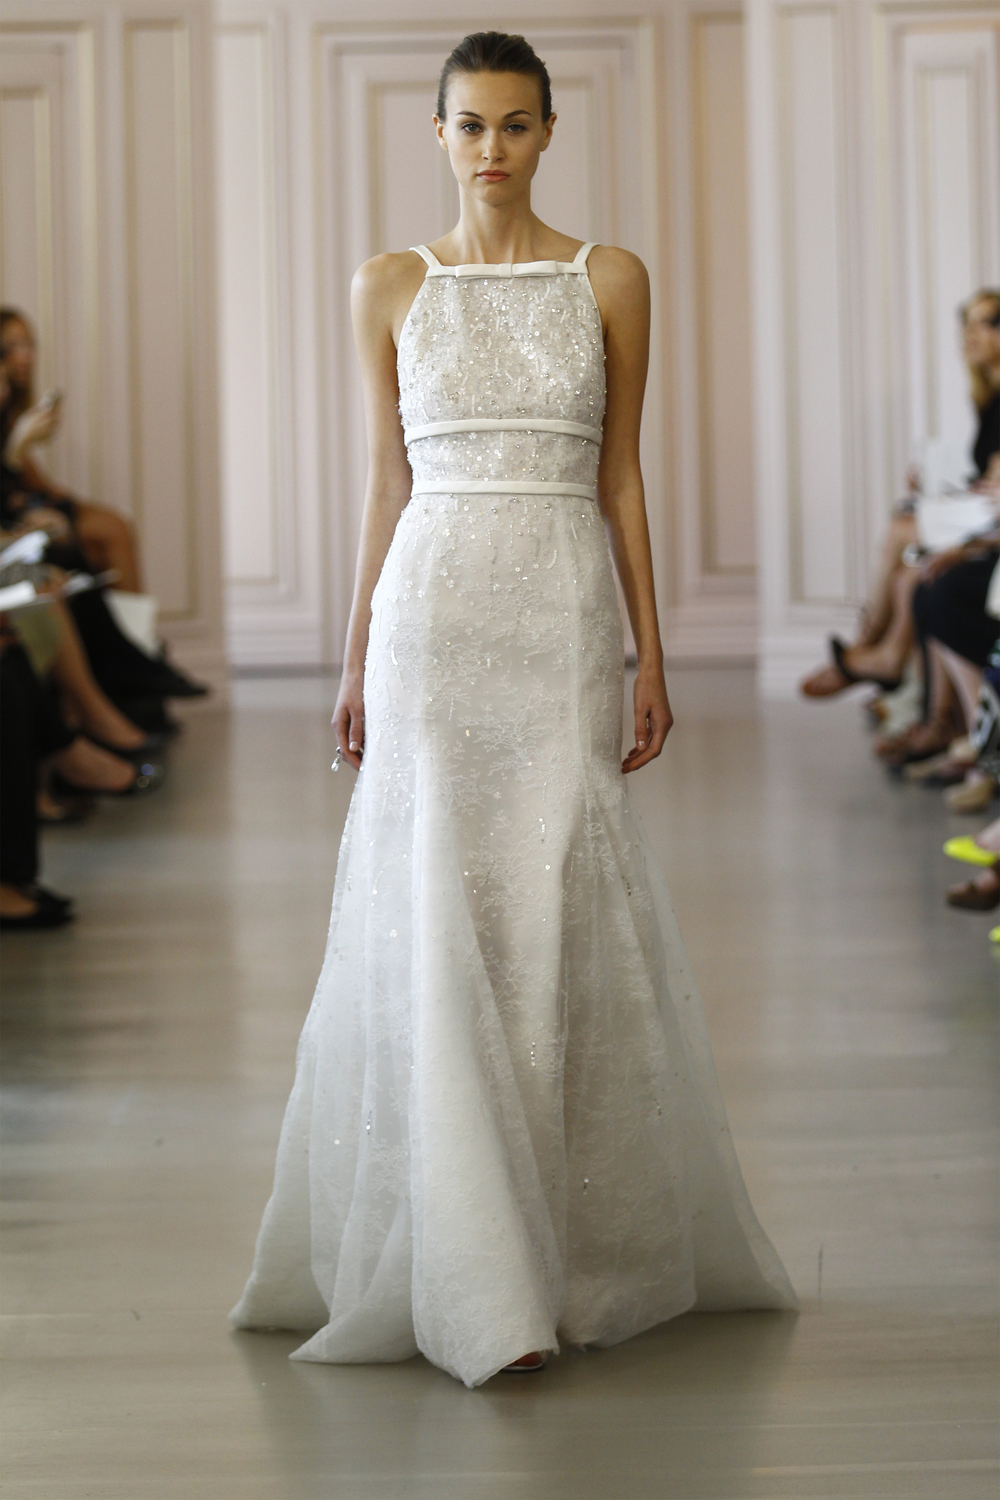 Sarah Ivory Chantilly lace gown with crystal and sequin embroidery and radzimir belt. Silver and crystal ring, white ribbon embroidered sandal.